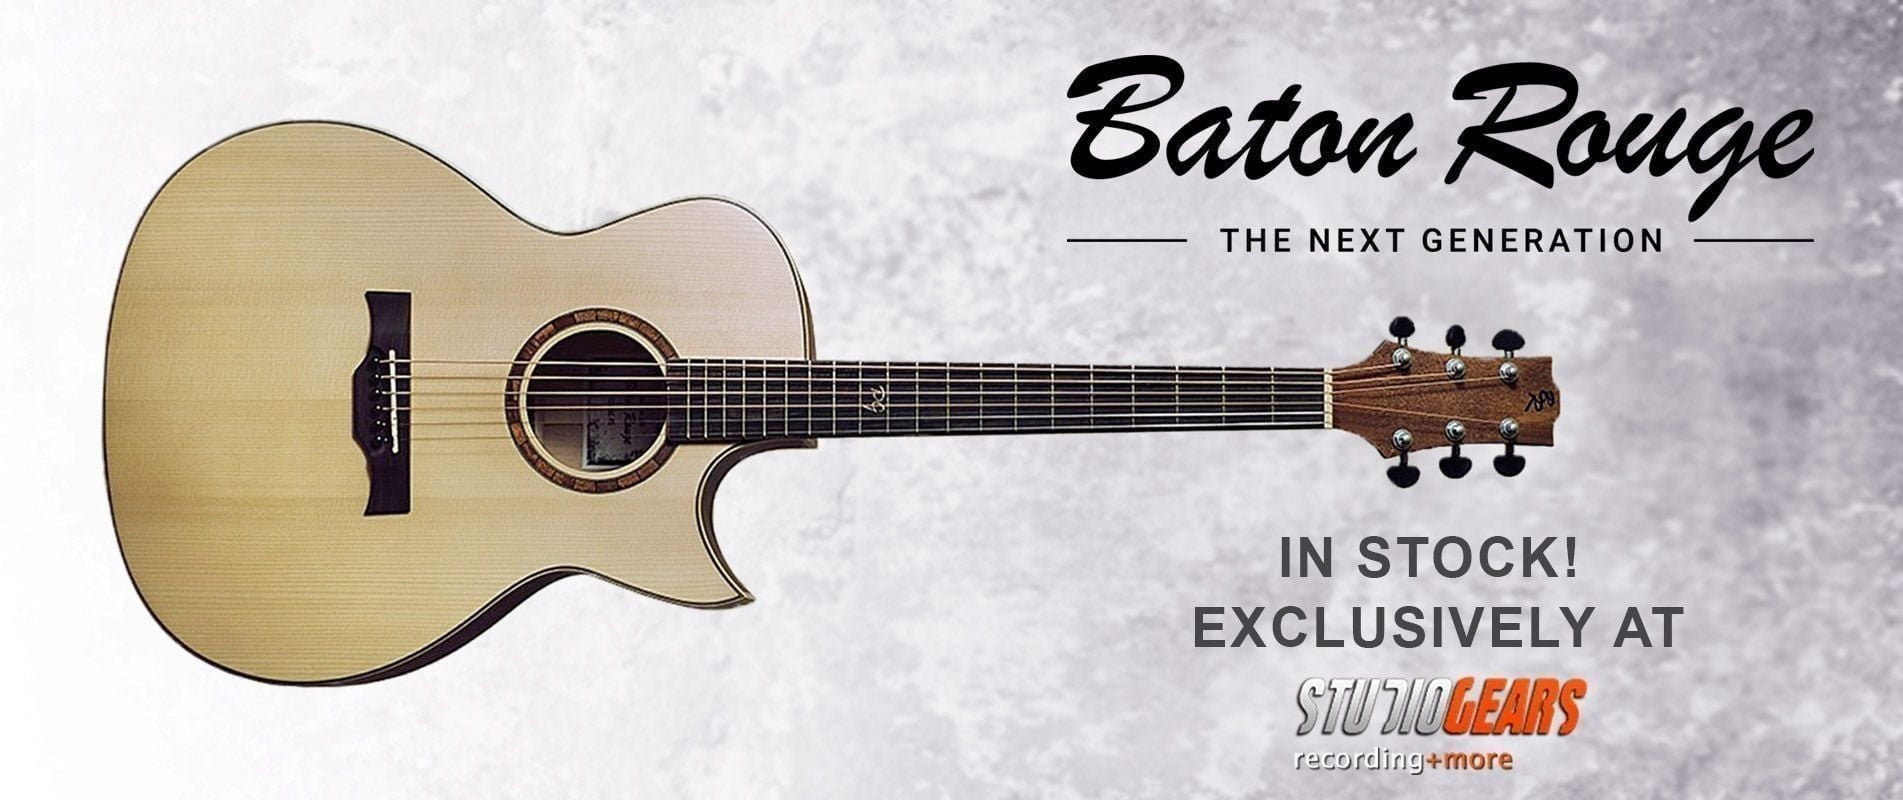 Baton Rouge Guitars exclusively at Studio Gears